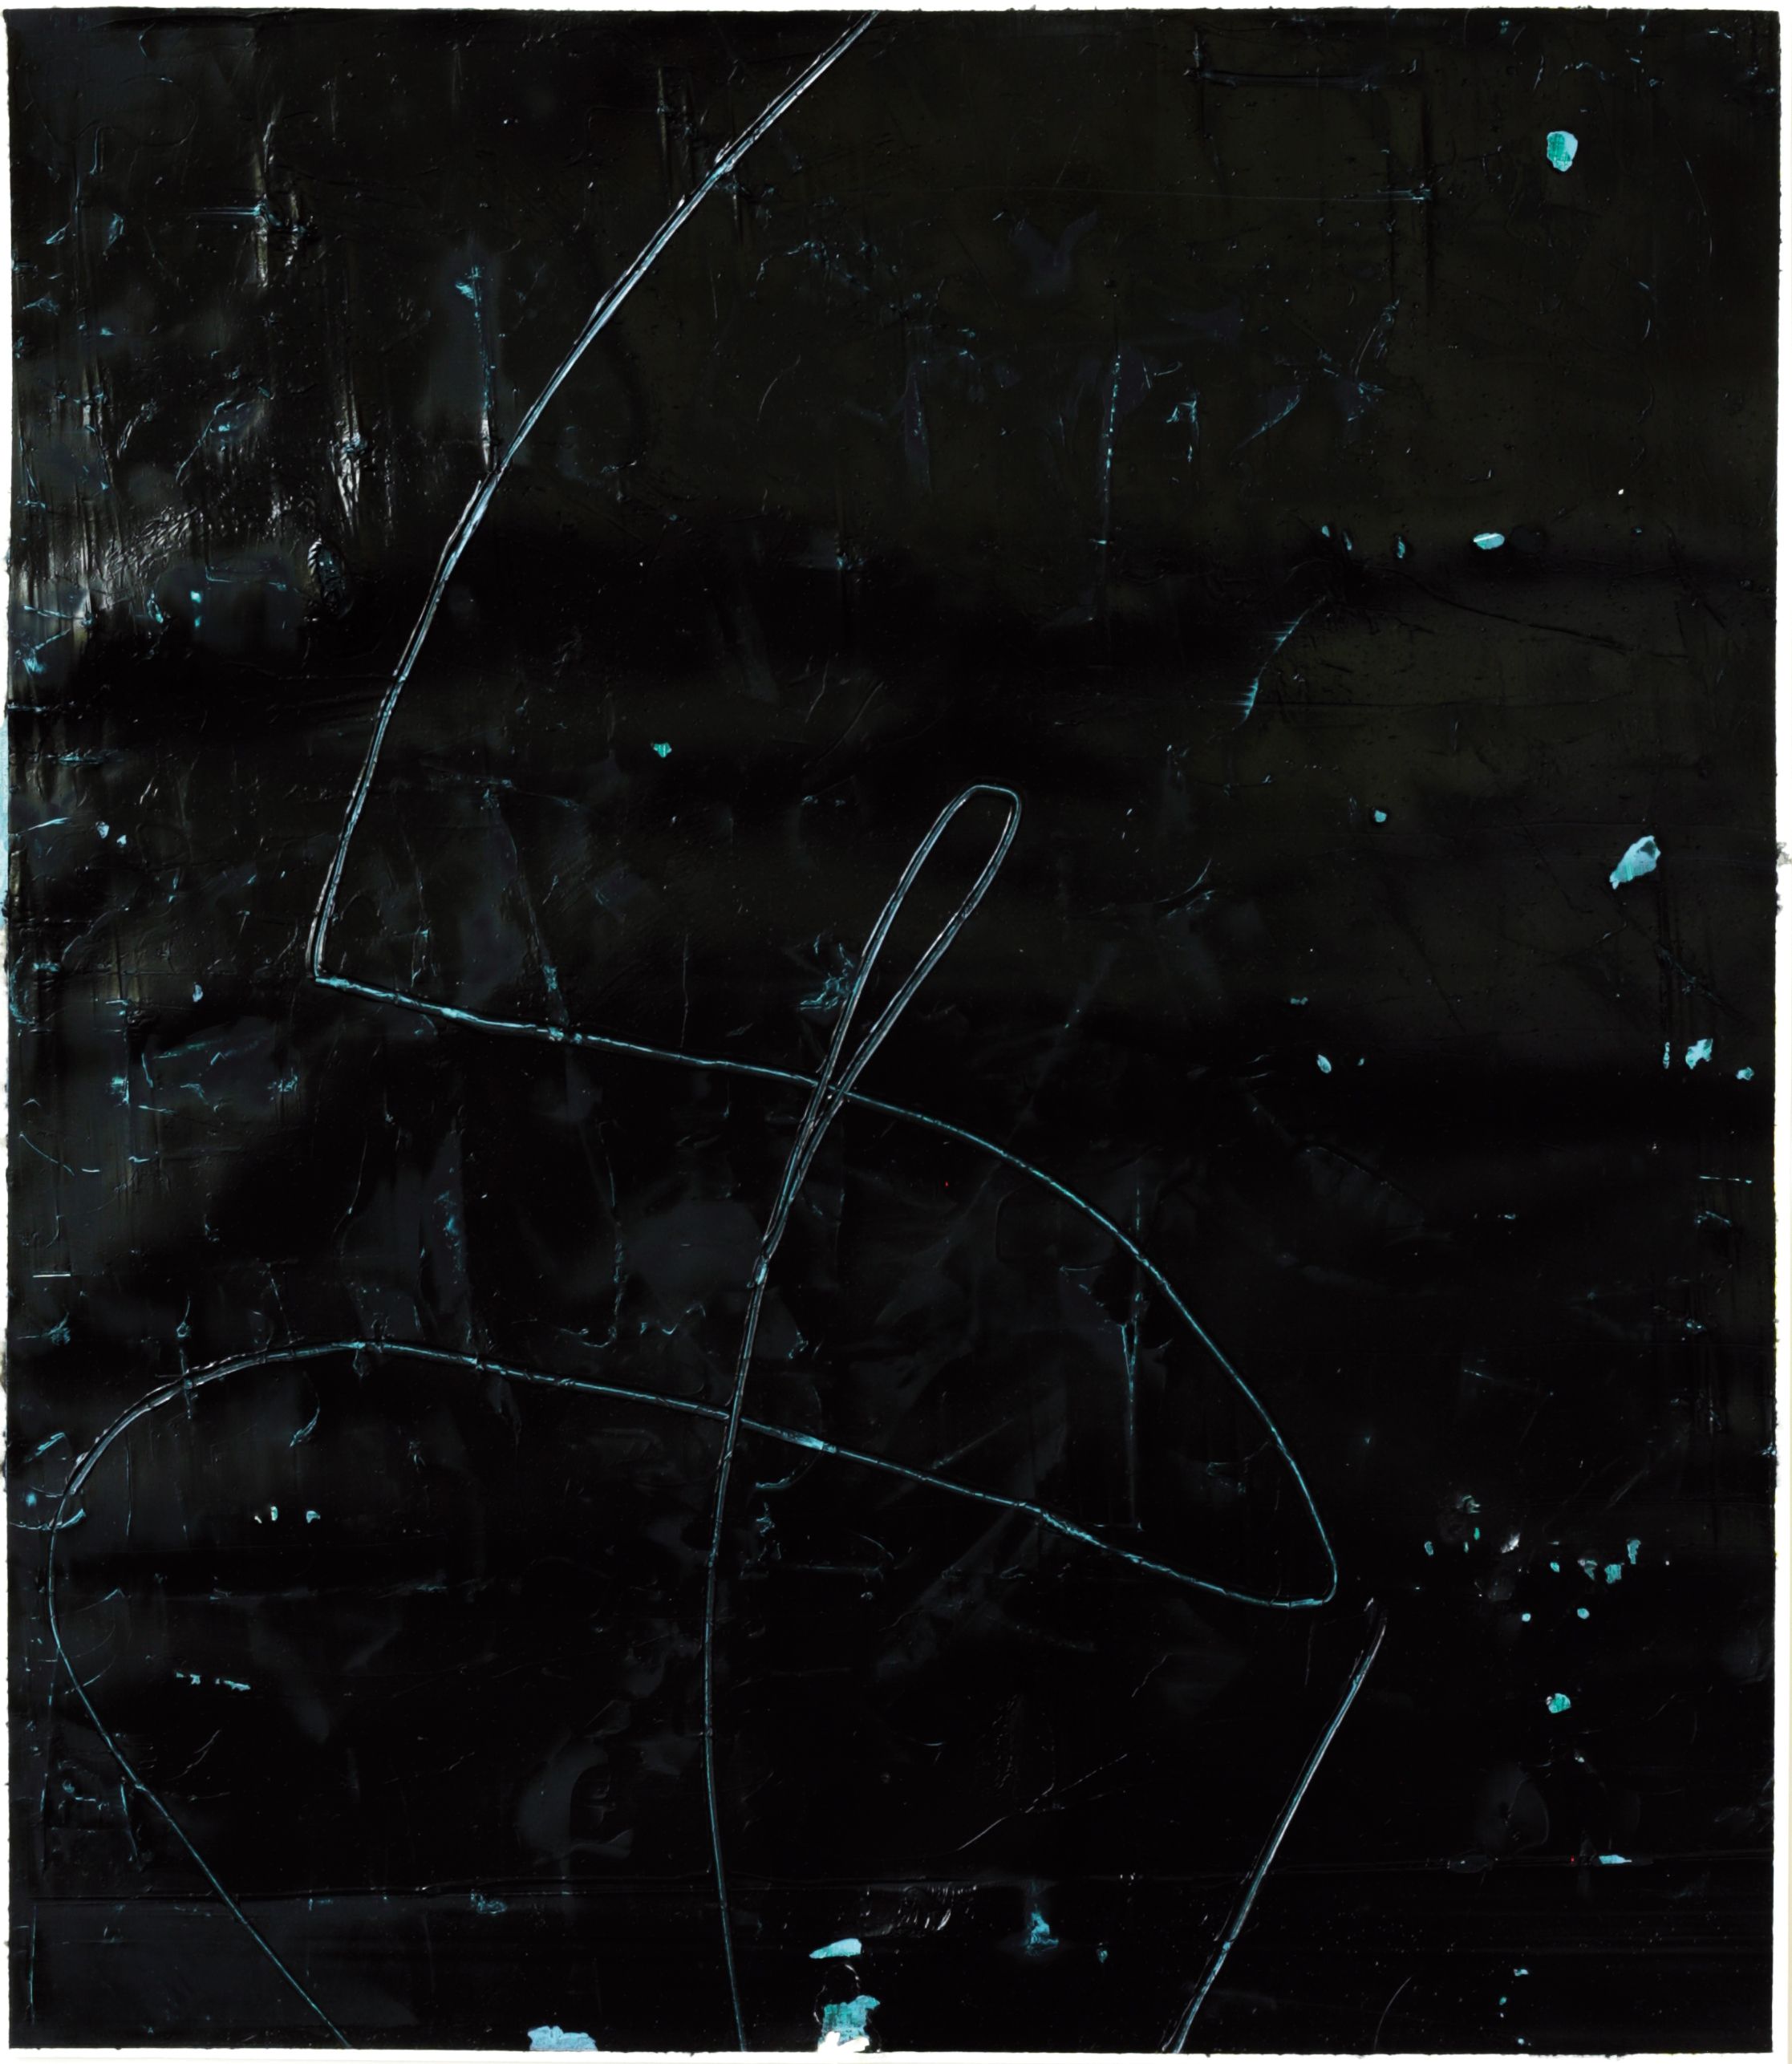 Felix_Becker_untitled (Herum II) 2019_oil and gesso on paper_47 x 42 cm